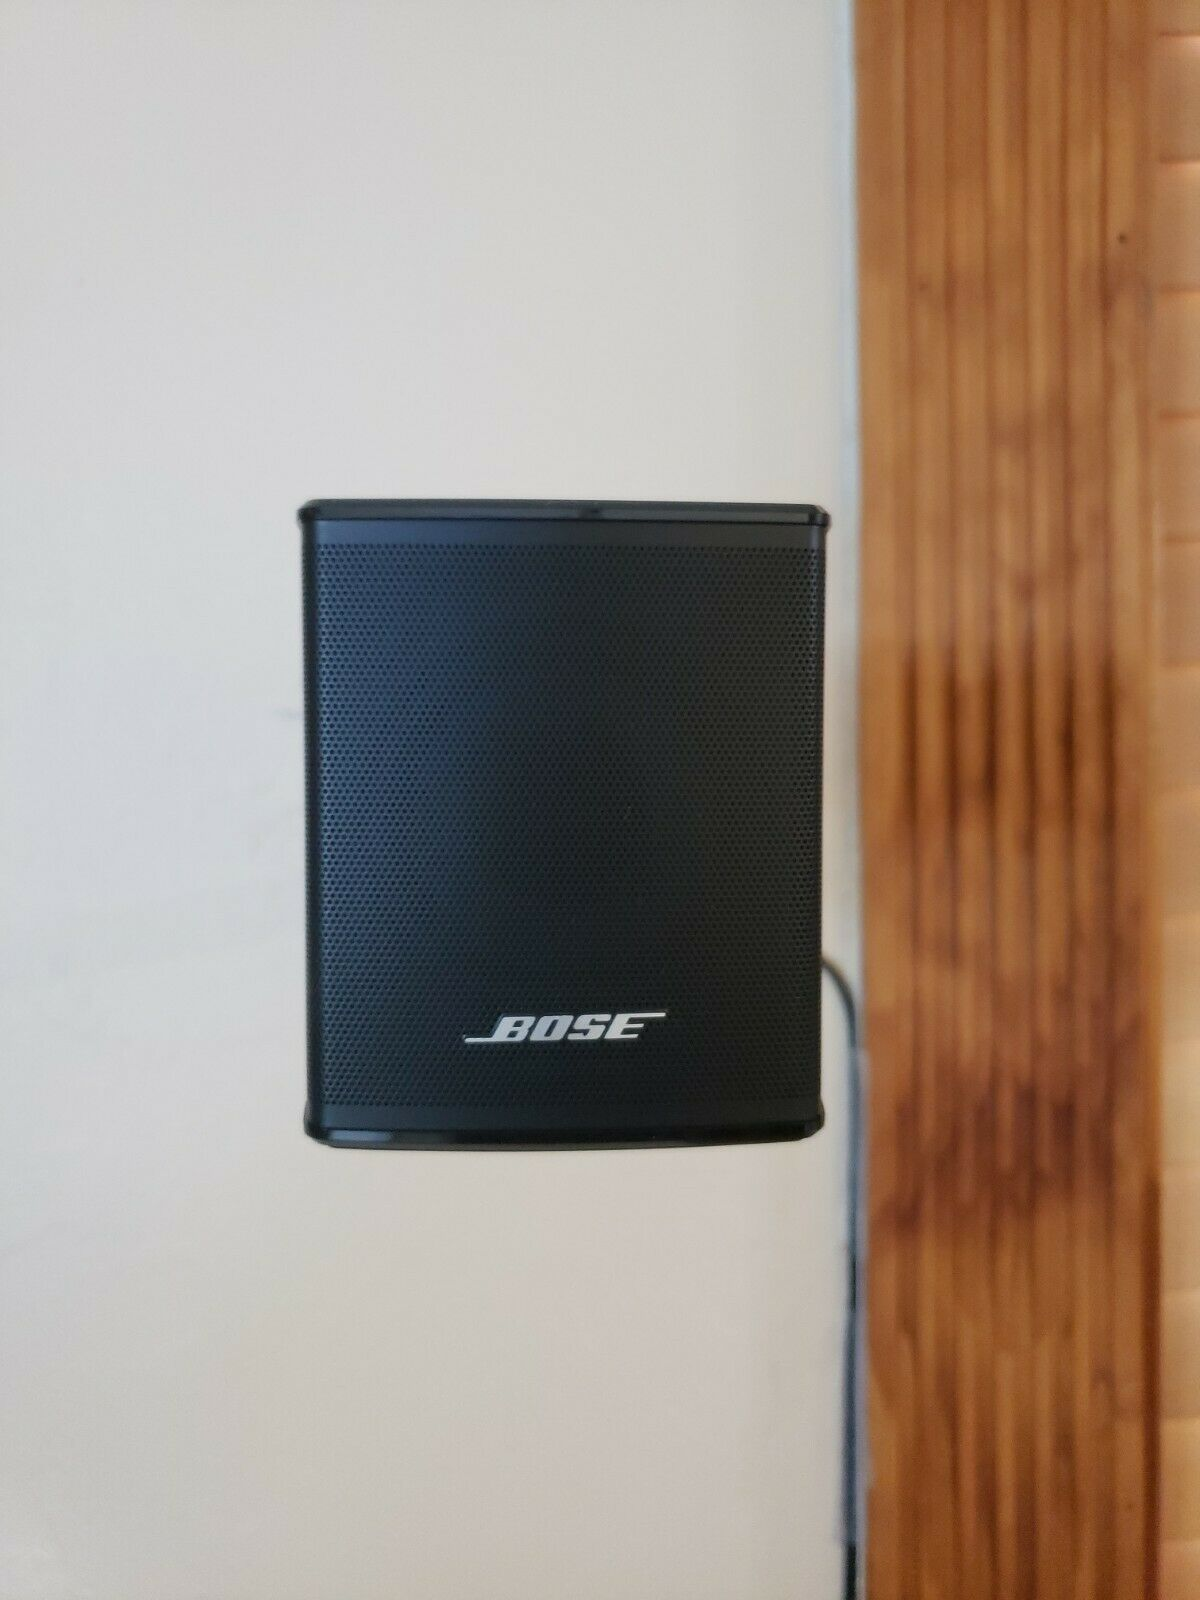 Bose 300 Wireless Surround Sound Speakers with Two Wall Mounts Included.. Buy it now for 600.00